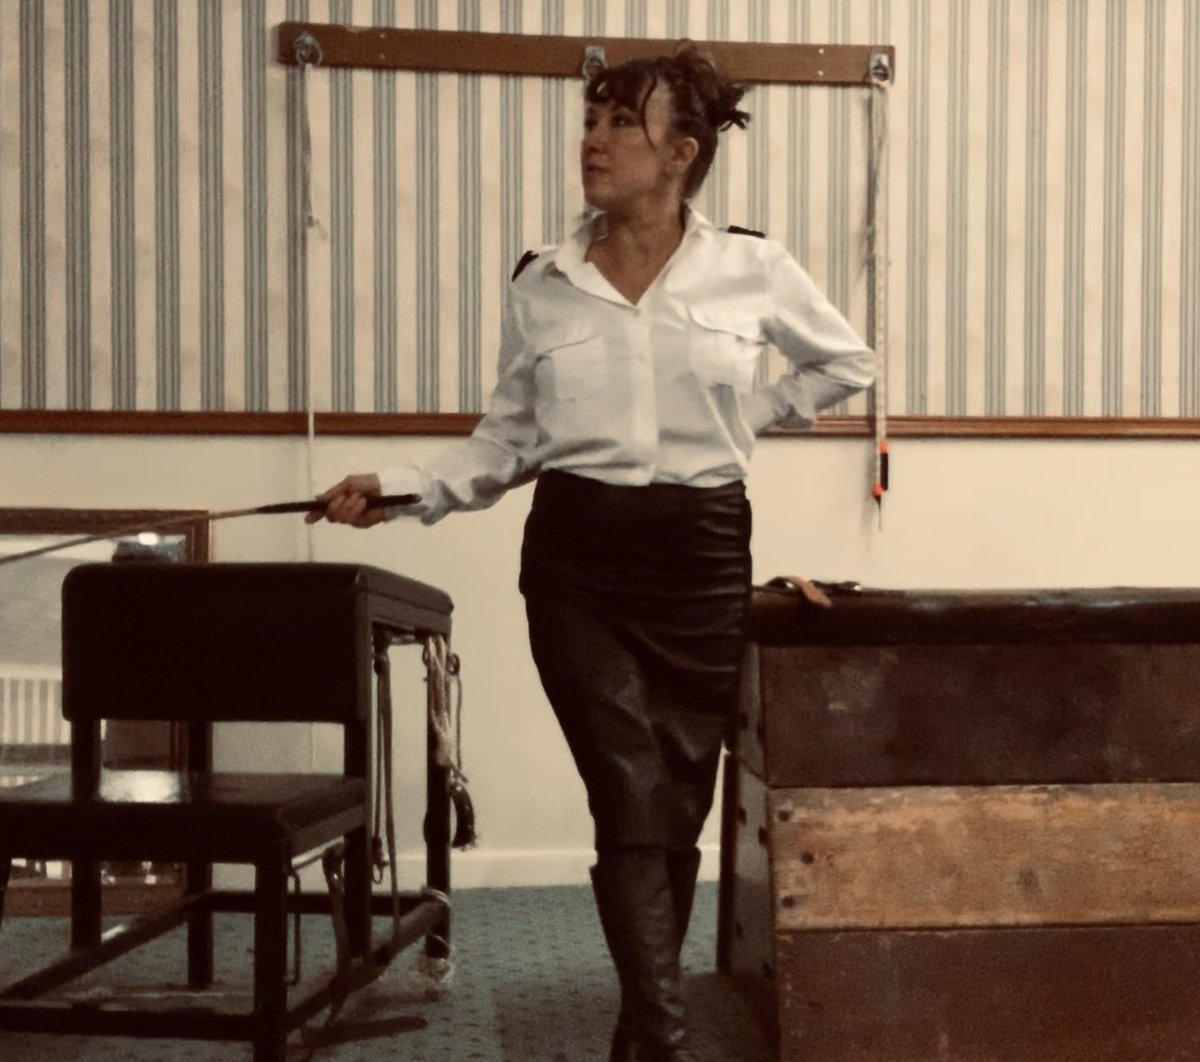 Images - Domestic domination role play